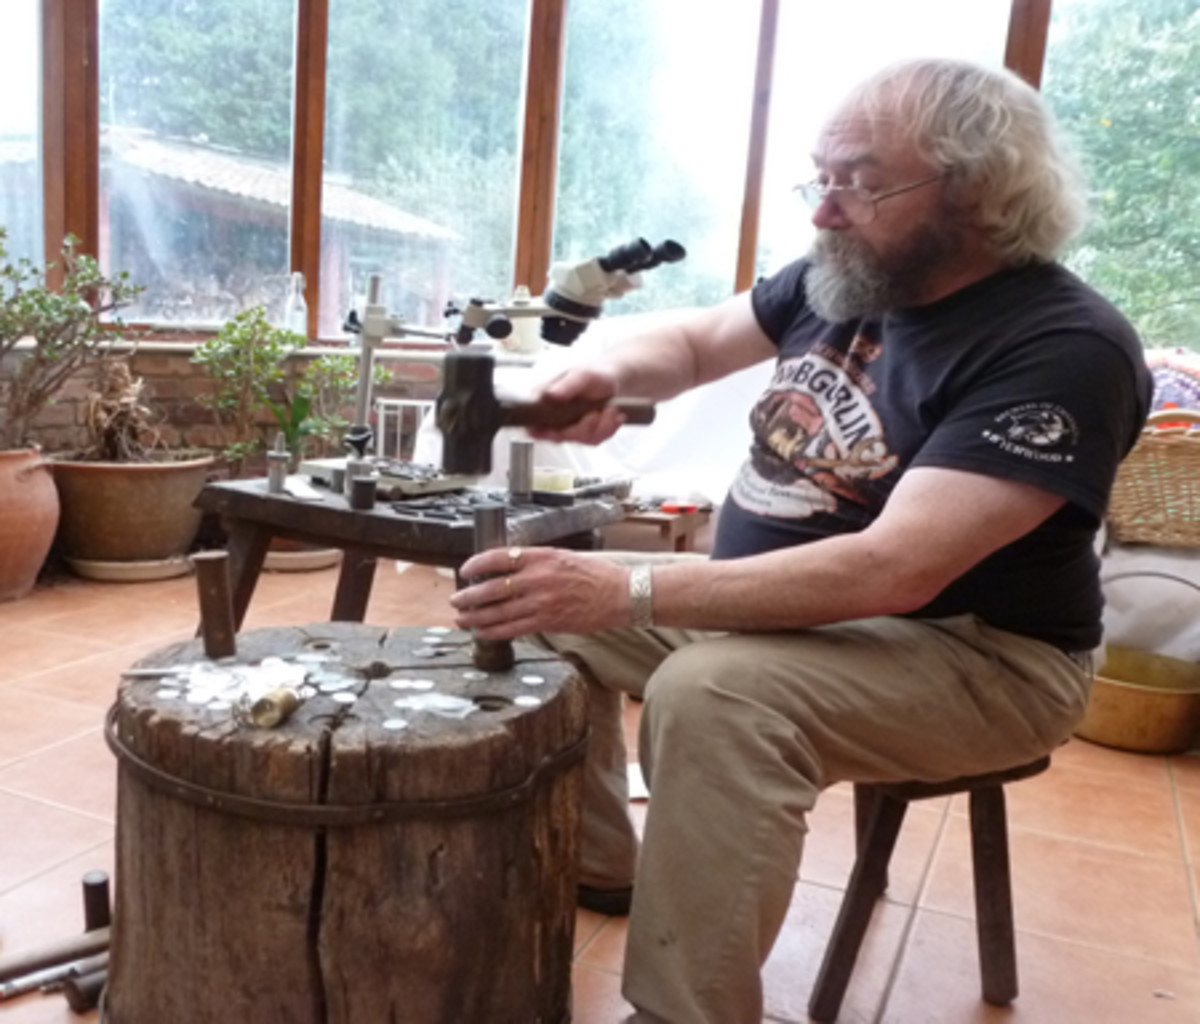 David Greenhalgh demonstrates how coins were struck in ancient times with hammer and anvil dies.